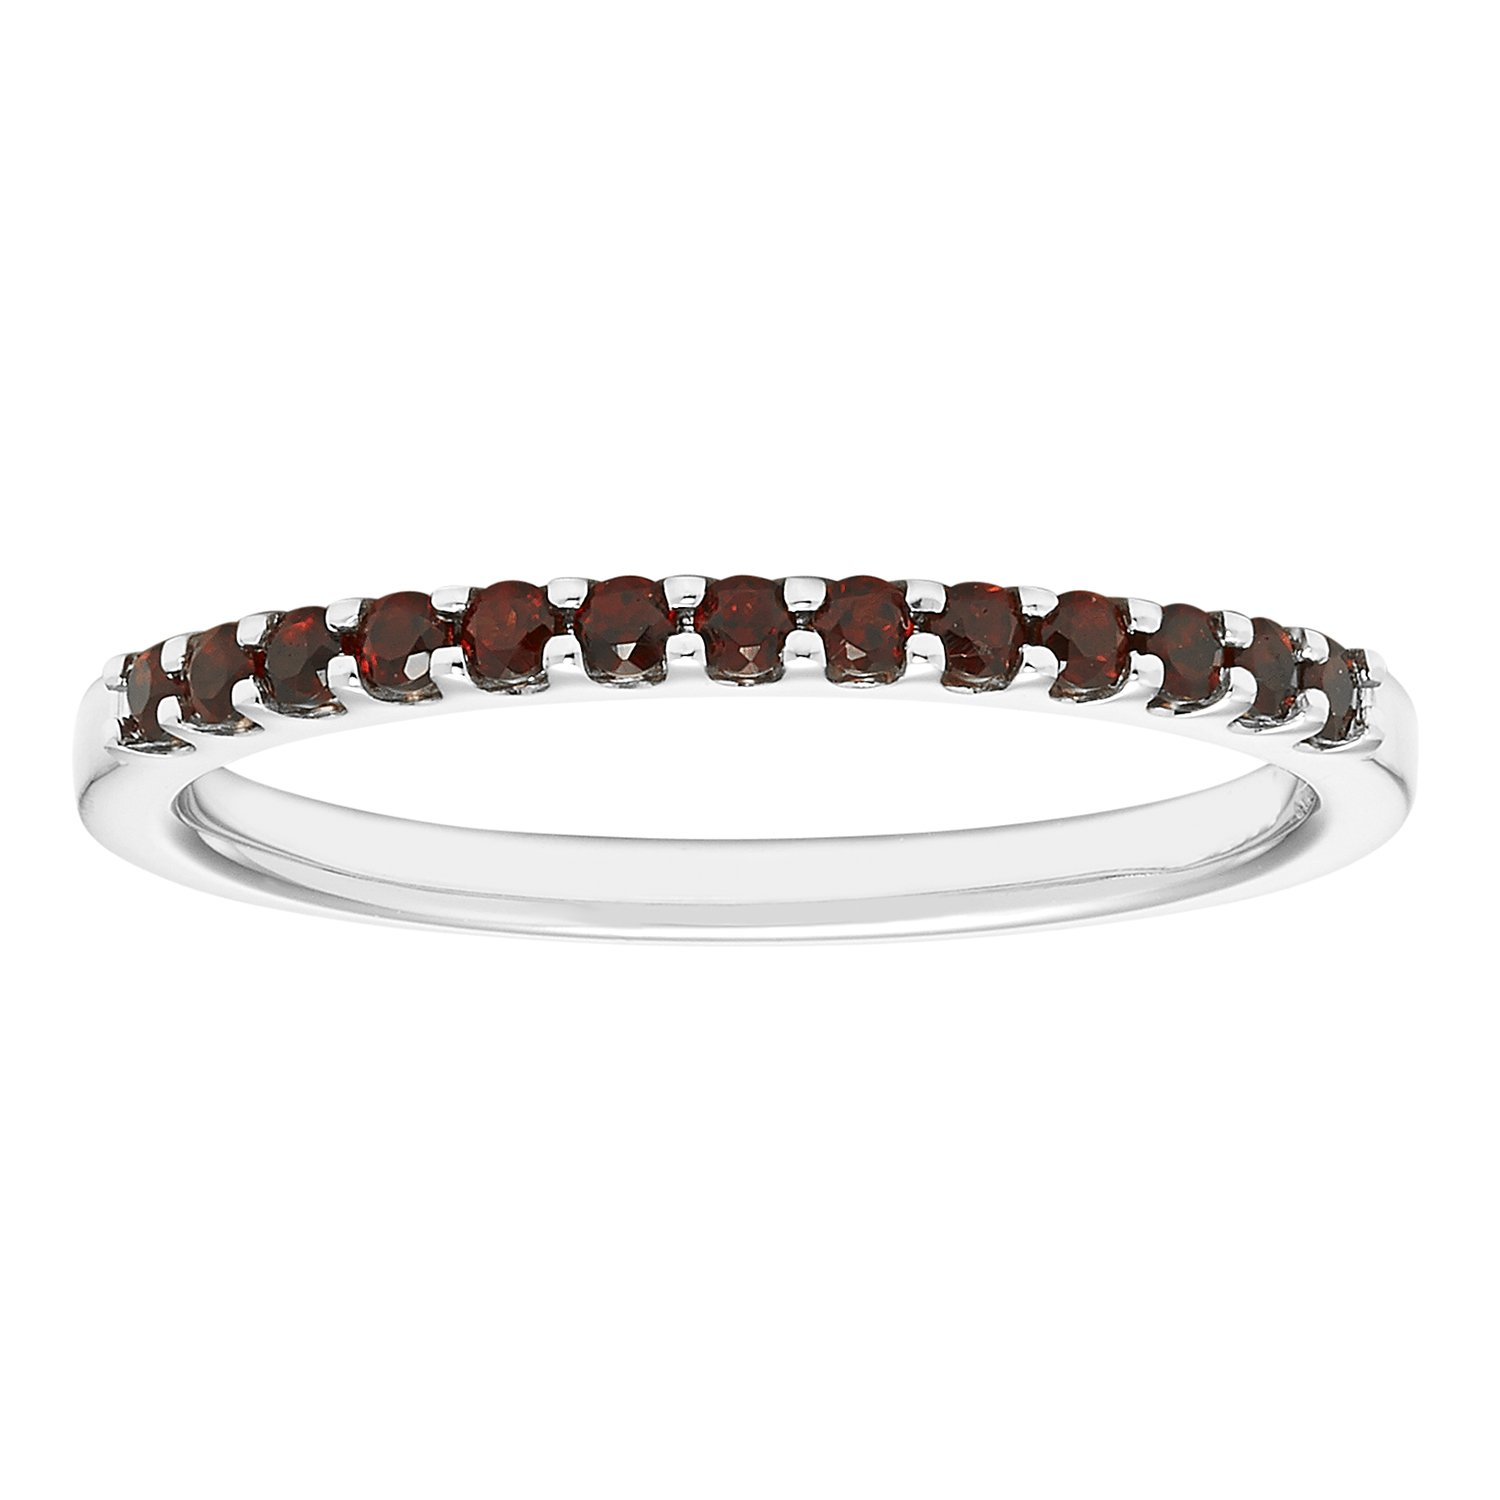 14K White Gold 1.04 Tgw. Garnet January Birthstone Stackable 2MM Band Ring by Boston Bay Diamonds